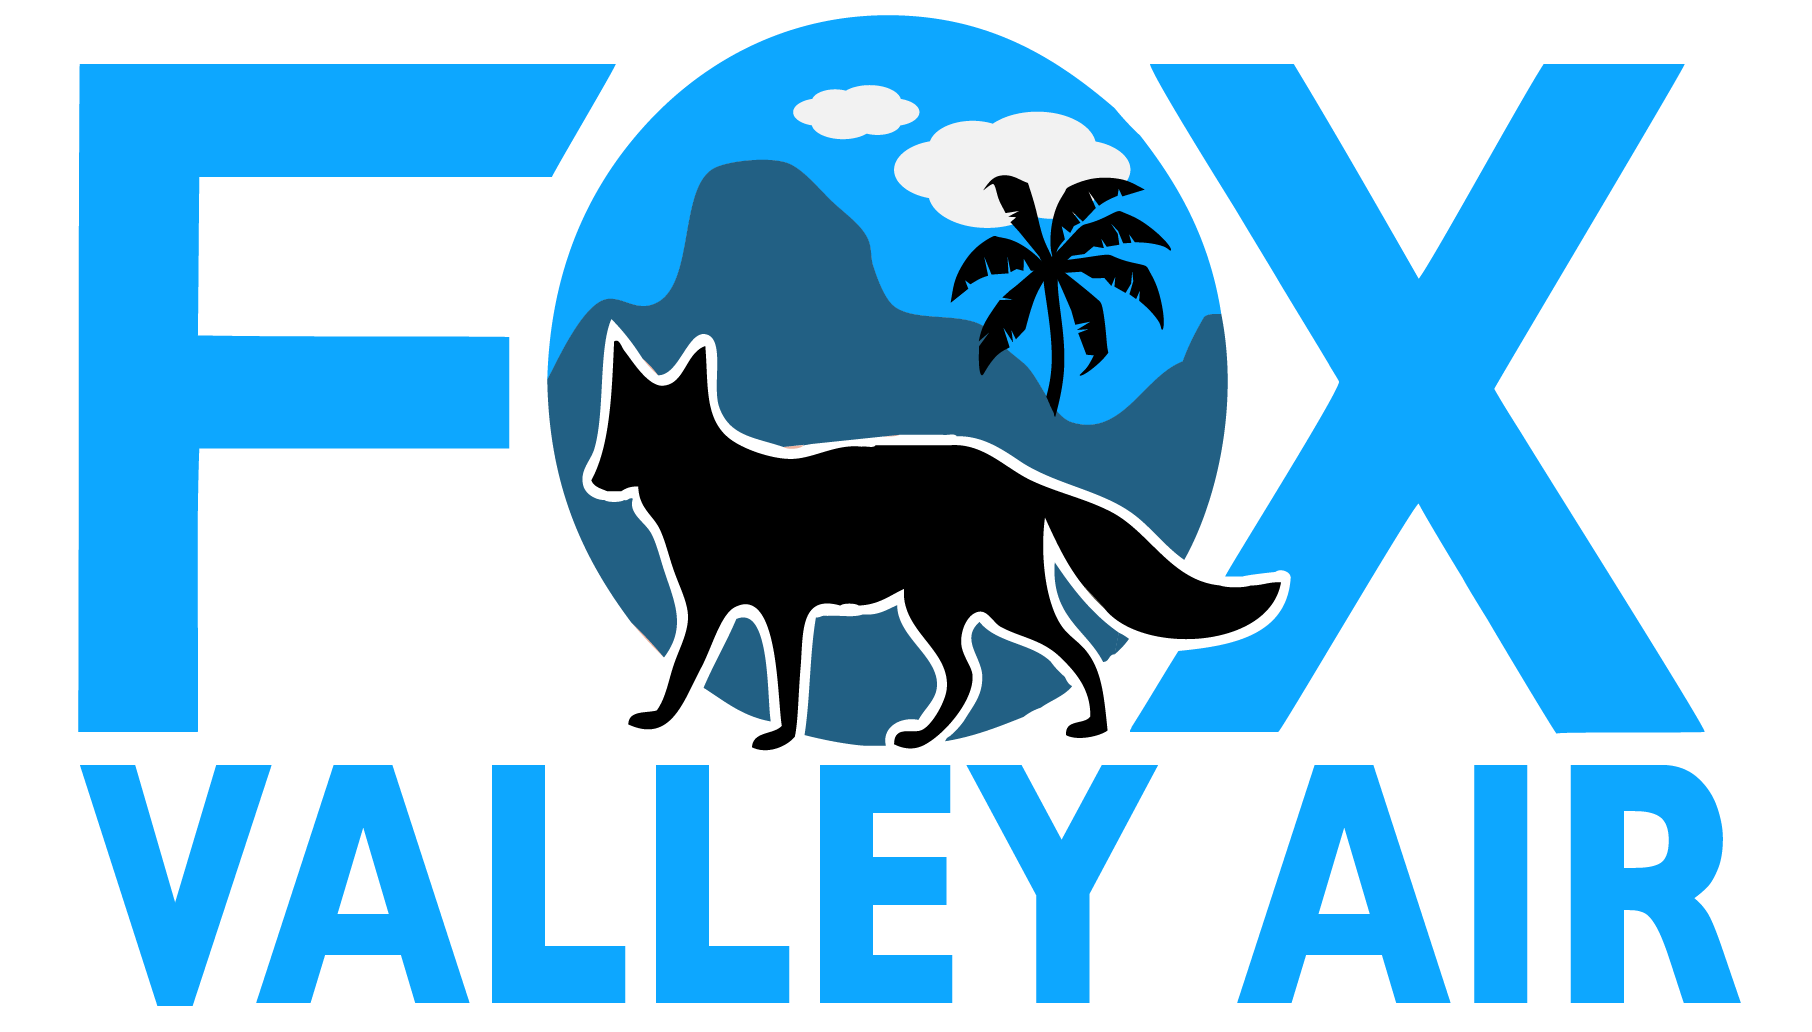 Fox Valley Air